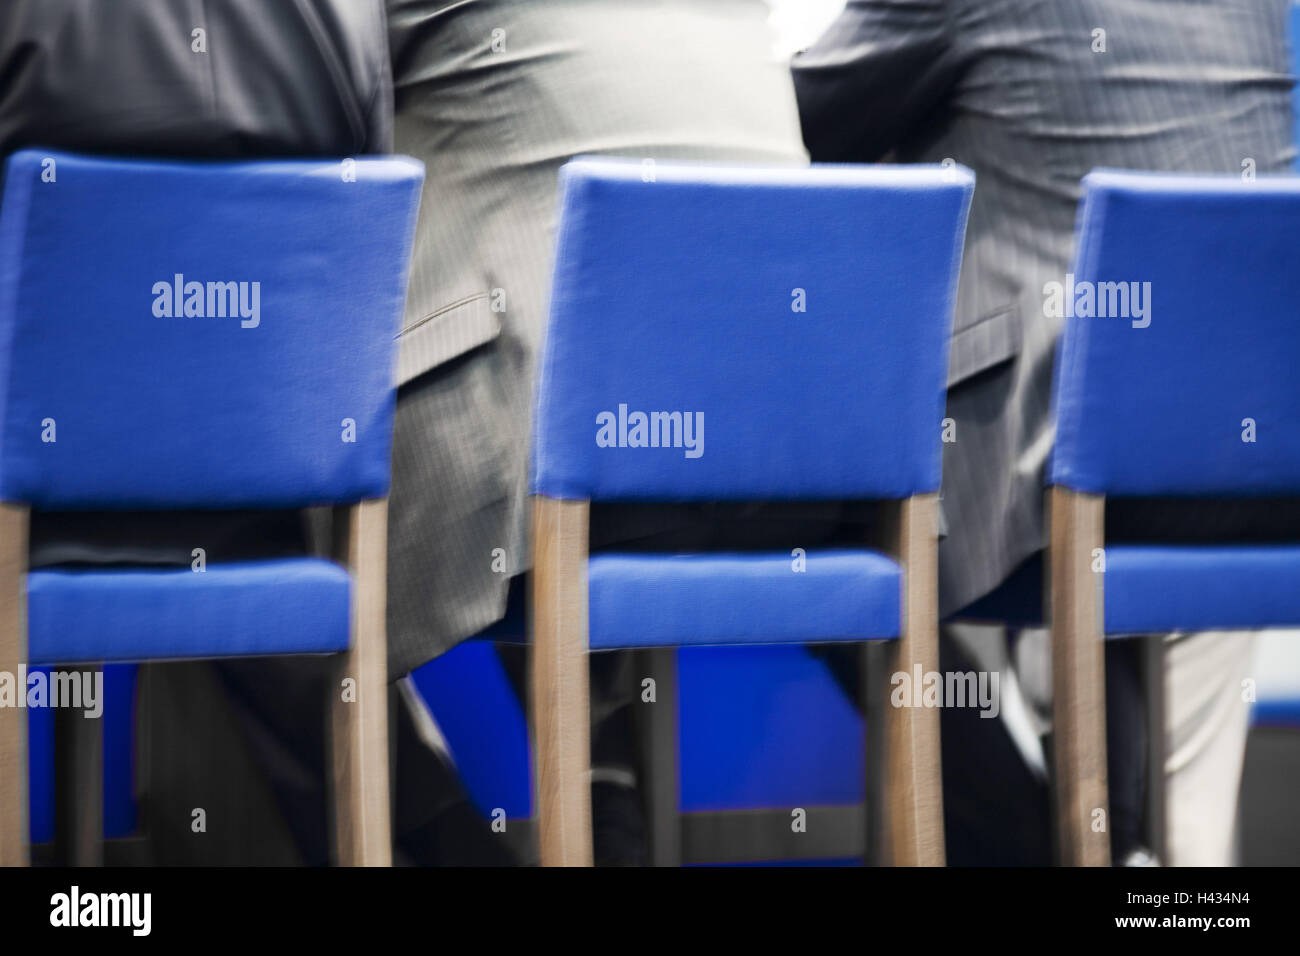 Chairs, blue, managers, sits, back-opinion, detail, people, hall, lecture, Bestuhlung, seat-rows, men, suits, side - Stock Image